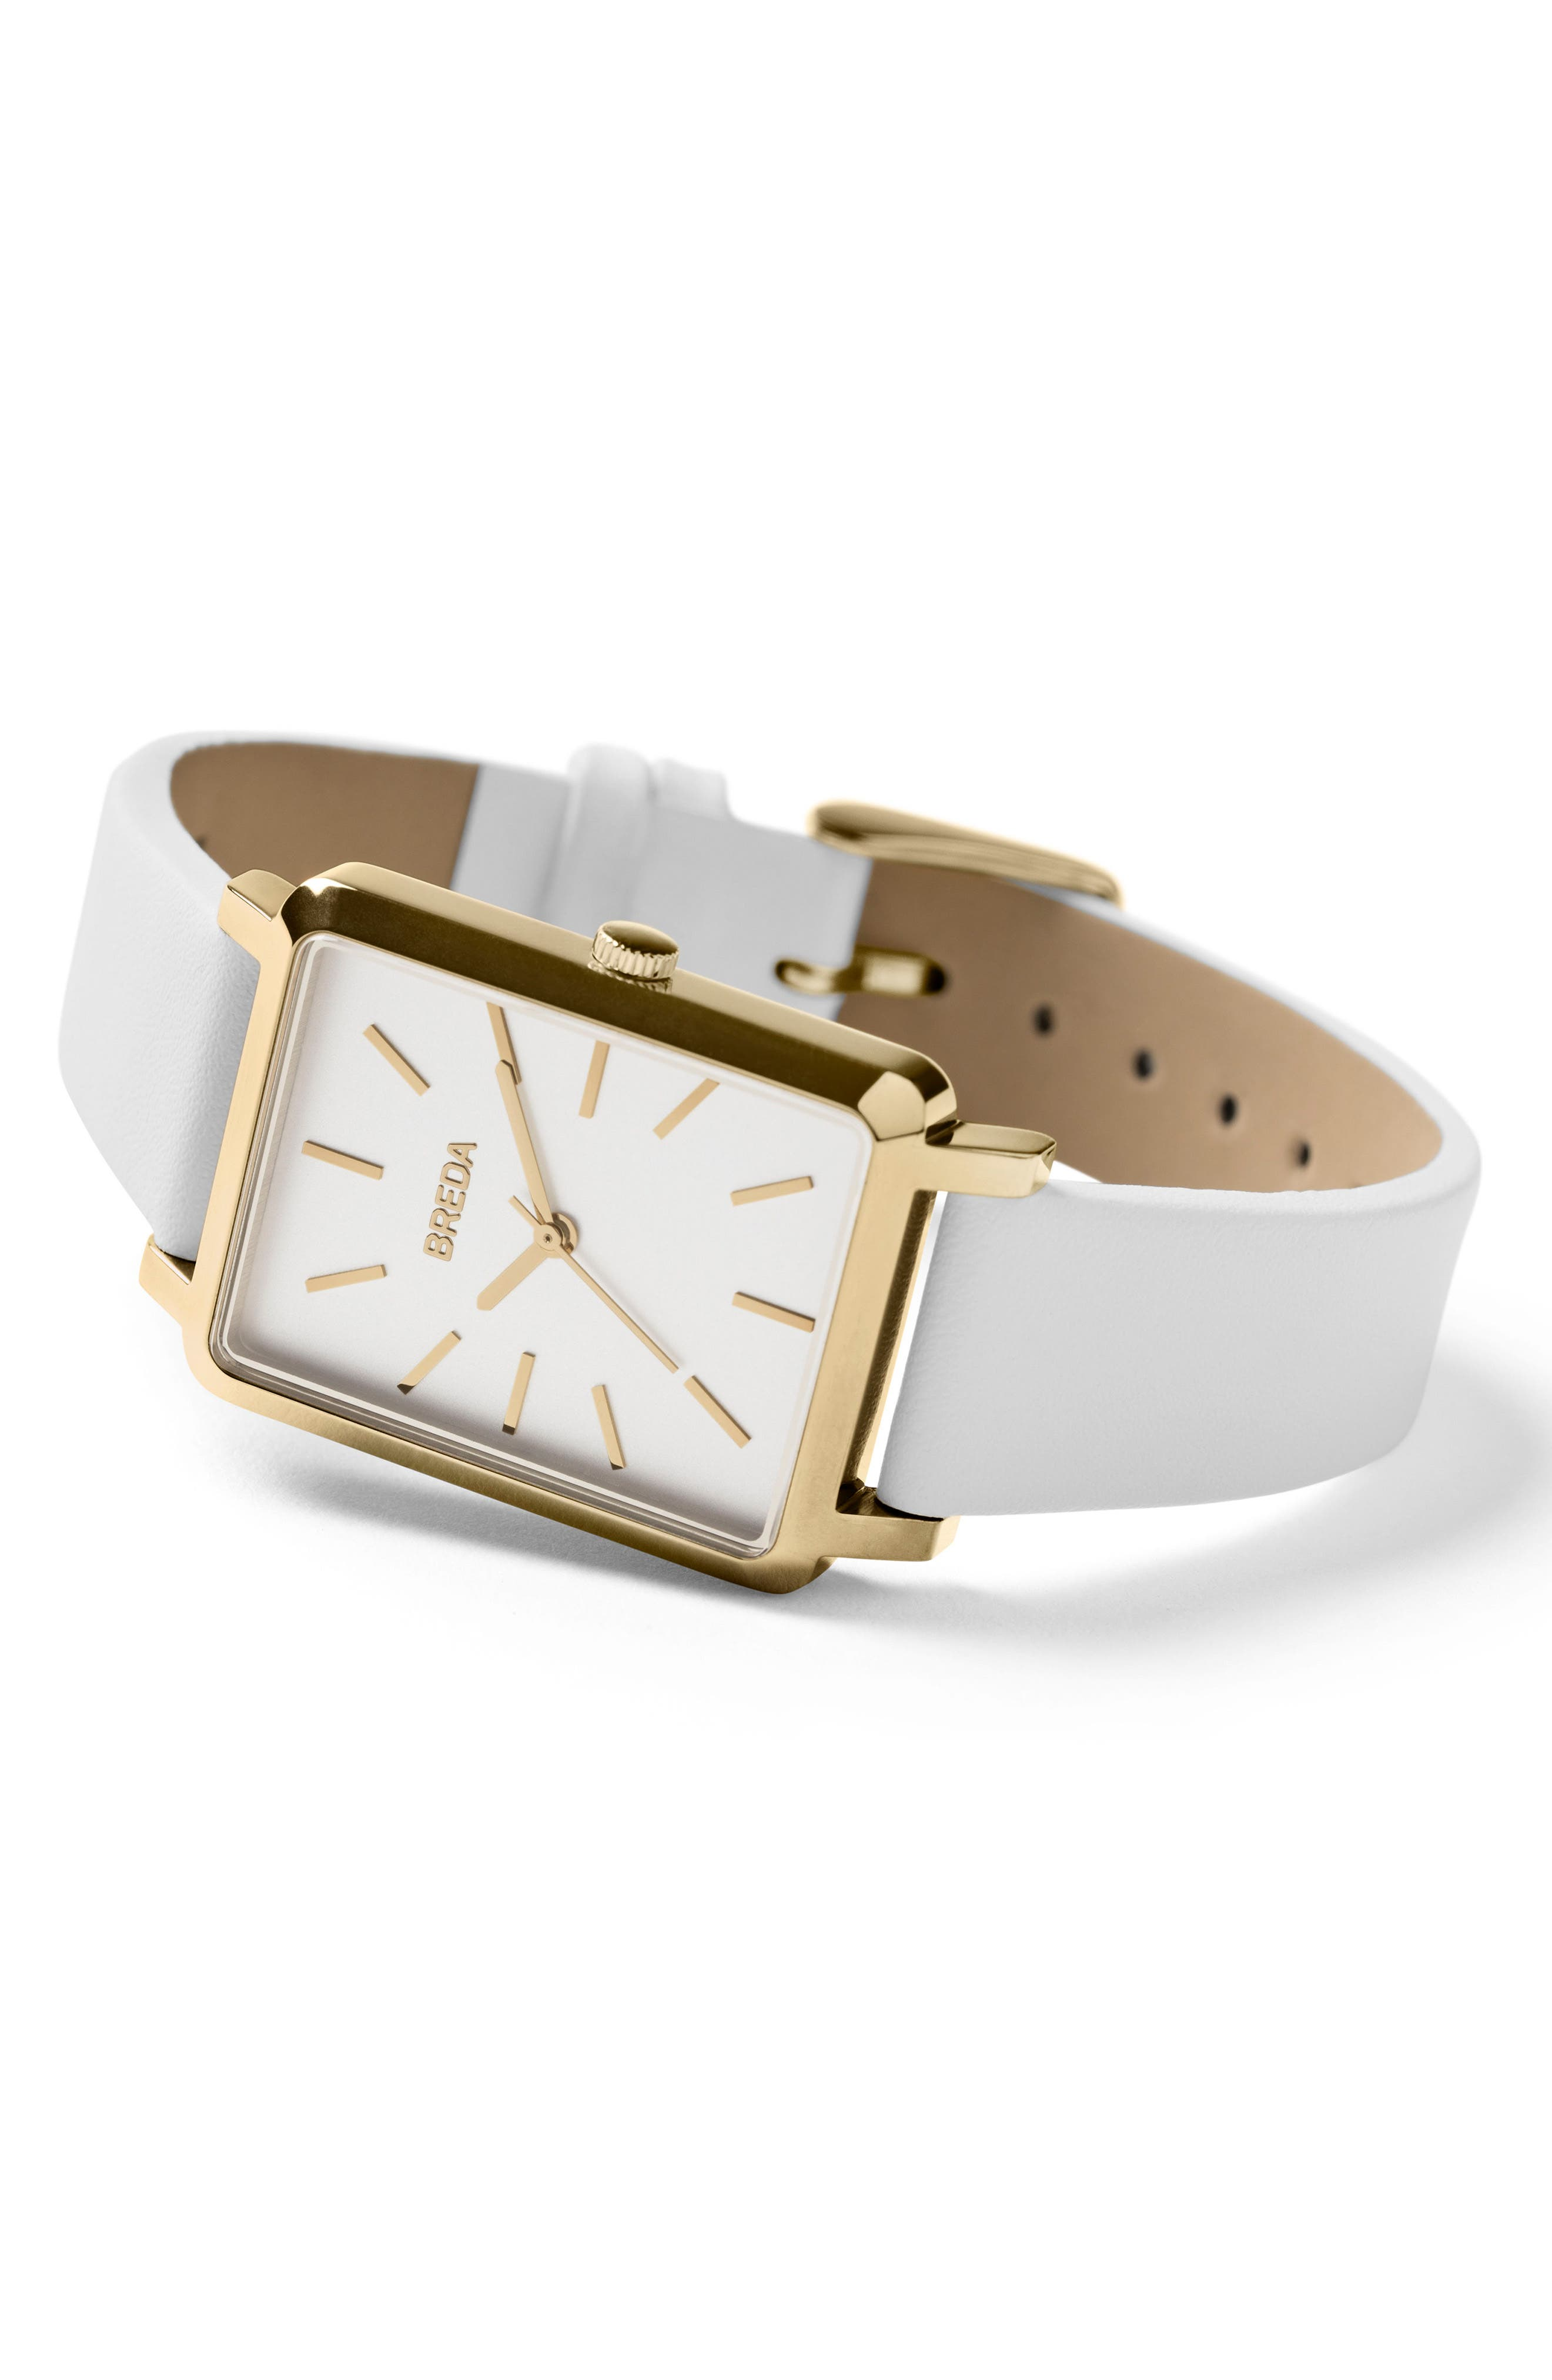 Baer Rectangular Leather Strap Watch, 26mm,                             Alternate thumbnail 3, color,                             White/ Gold